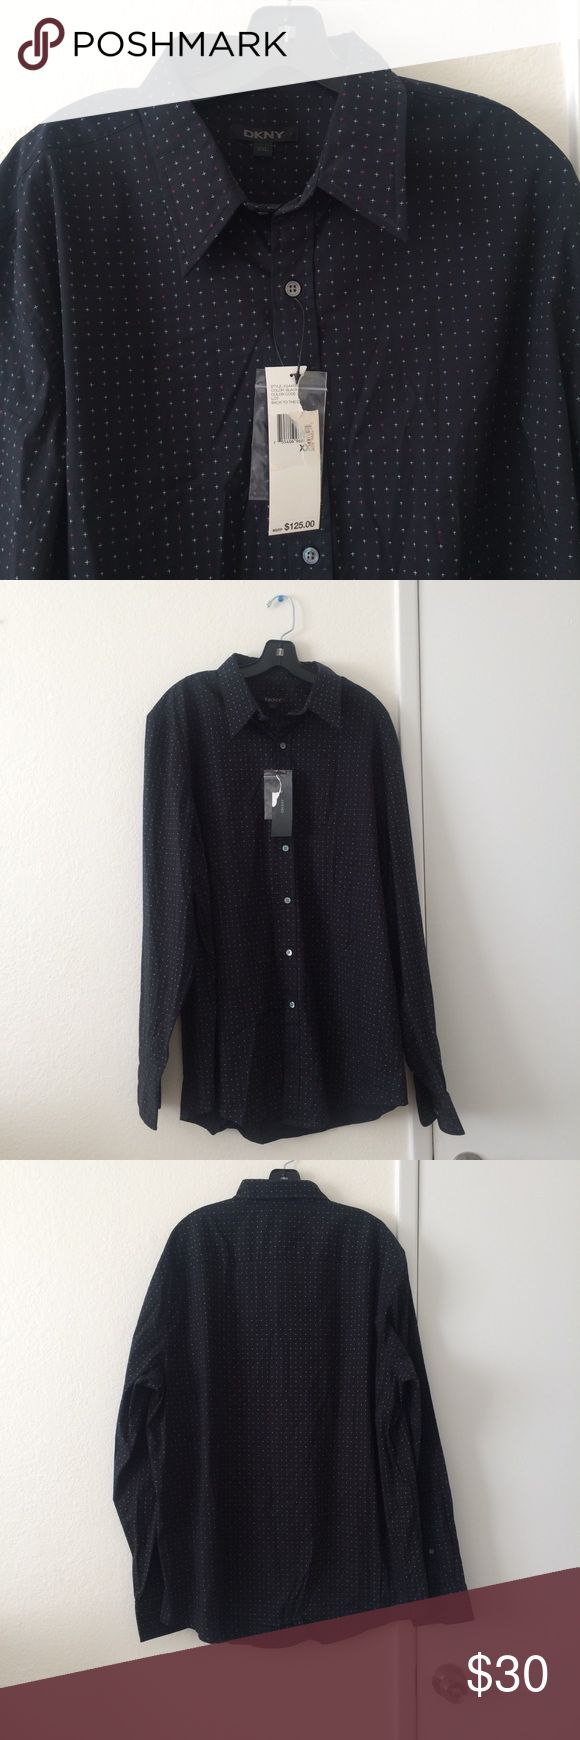 👔DKNY Men's XXL Long Sleeve Button Down BRAND NEW with TAGS completely flawless button down shirt from DKNY in size XXL. Shirt is black with red, white, and blue cross design all over. Buttons are all intact and are an iridescent, pearl-like color. Approximate measurements are below.  Sleeve length: 27 inches Neck: 19 inches Chest: 26 inches Top of shoulder to bottom hem: 33 inches Dkny Shirts Casual Button Down Shirts